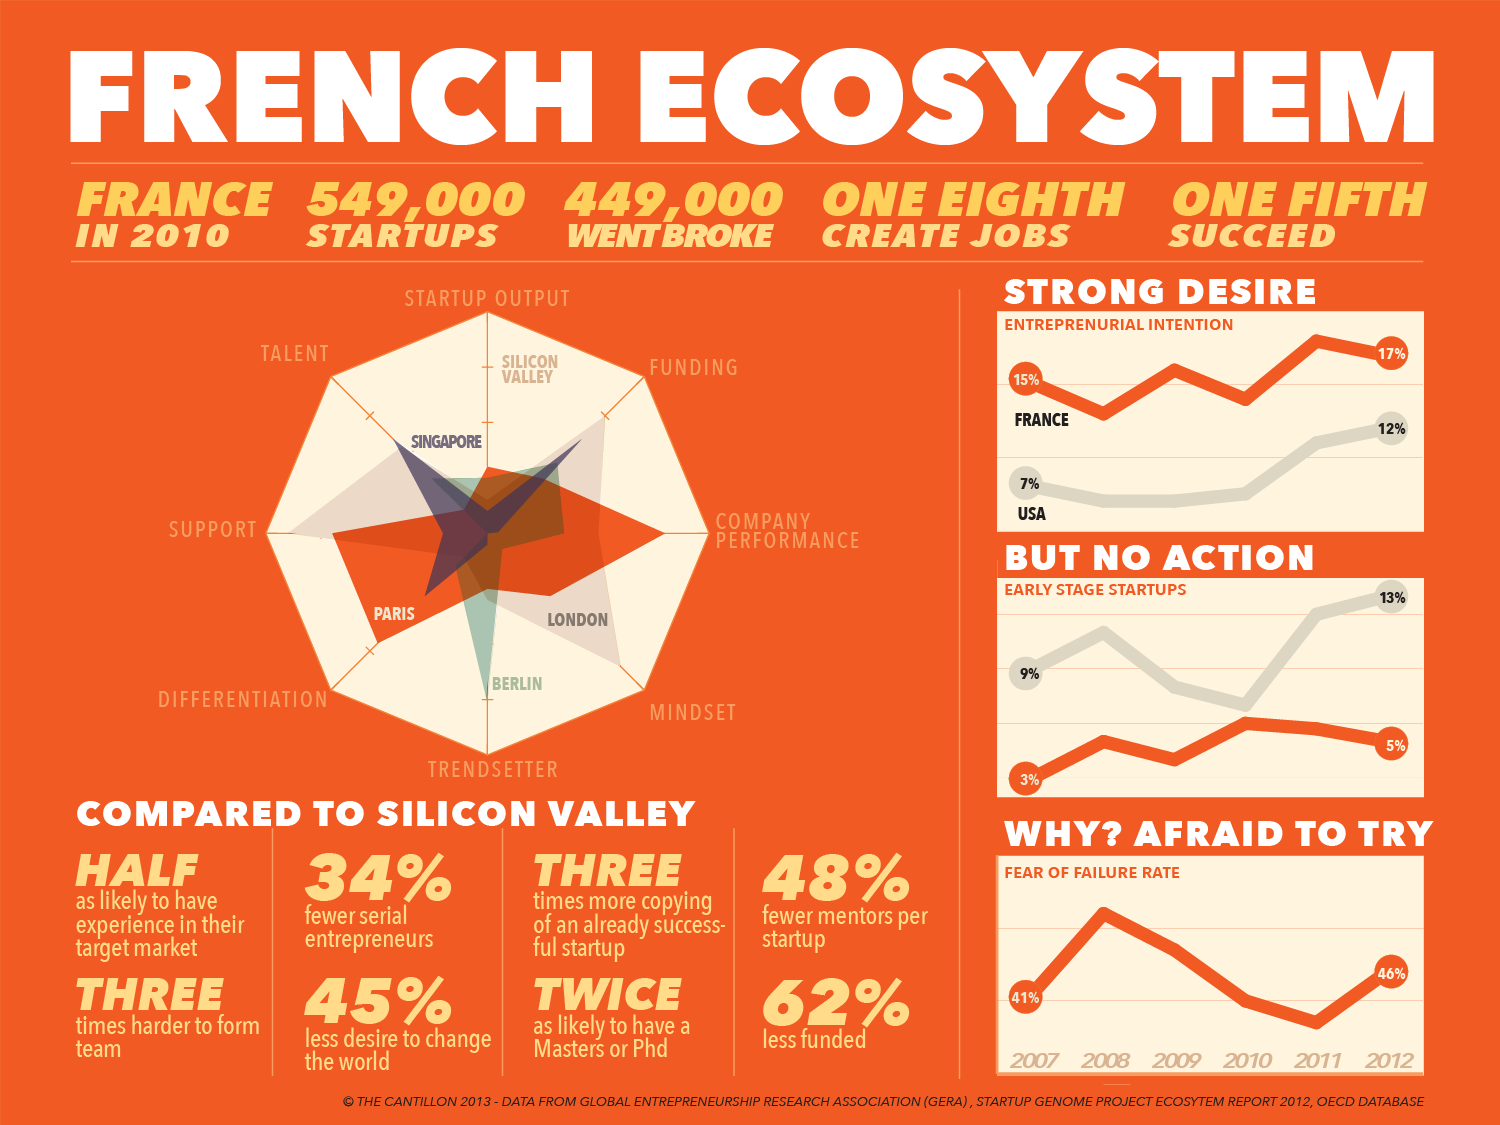 Some facts about the French eco-system. (click to enlarge)